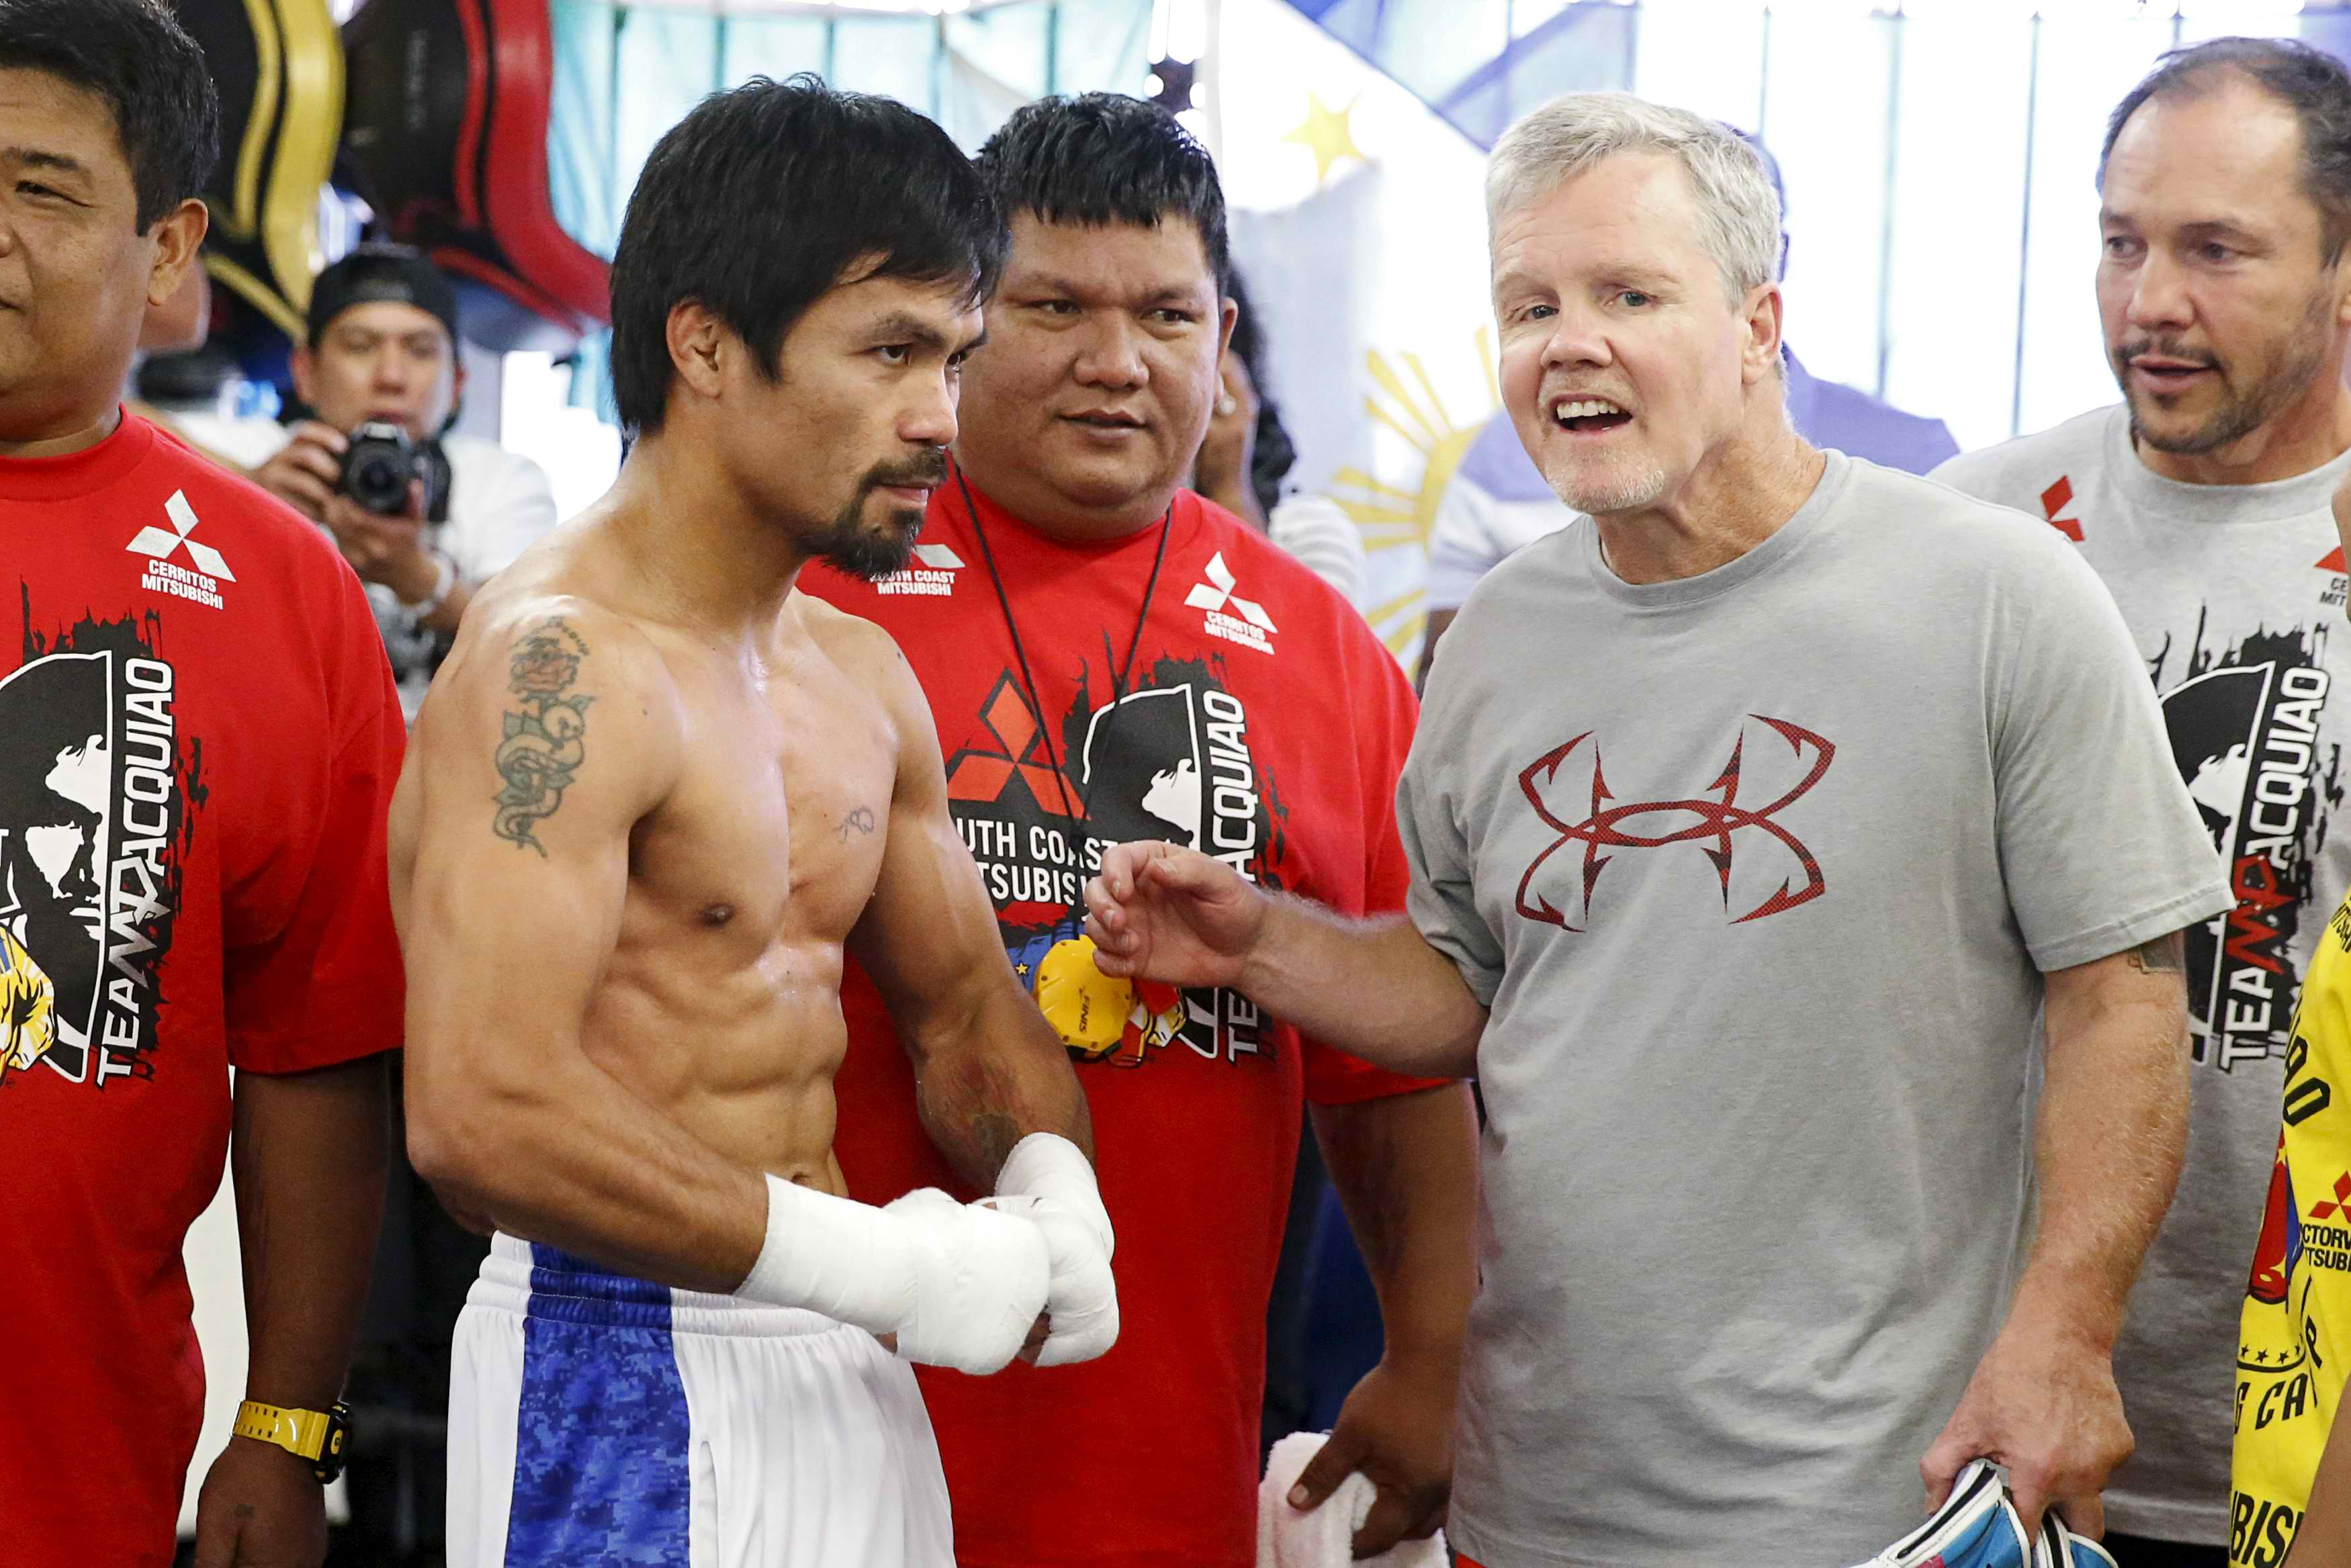 outlet store 06e1d 1adee Manny Pacquiao parts ways with Freddie Roach ahead of Lucas Matthysse bout  - The Ring